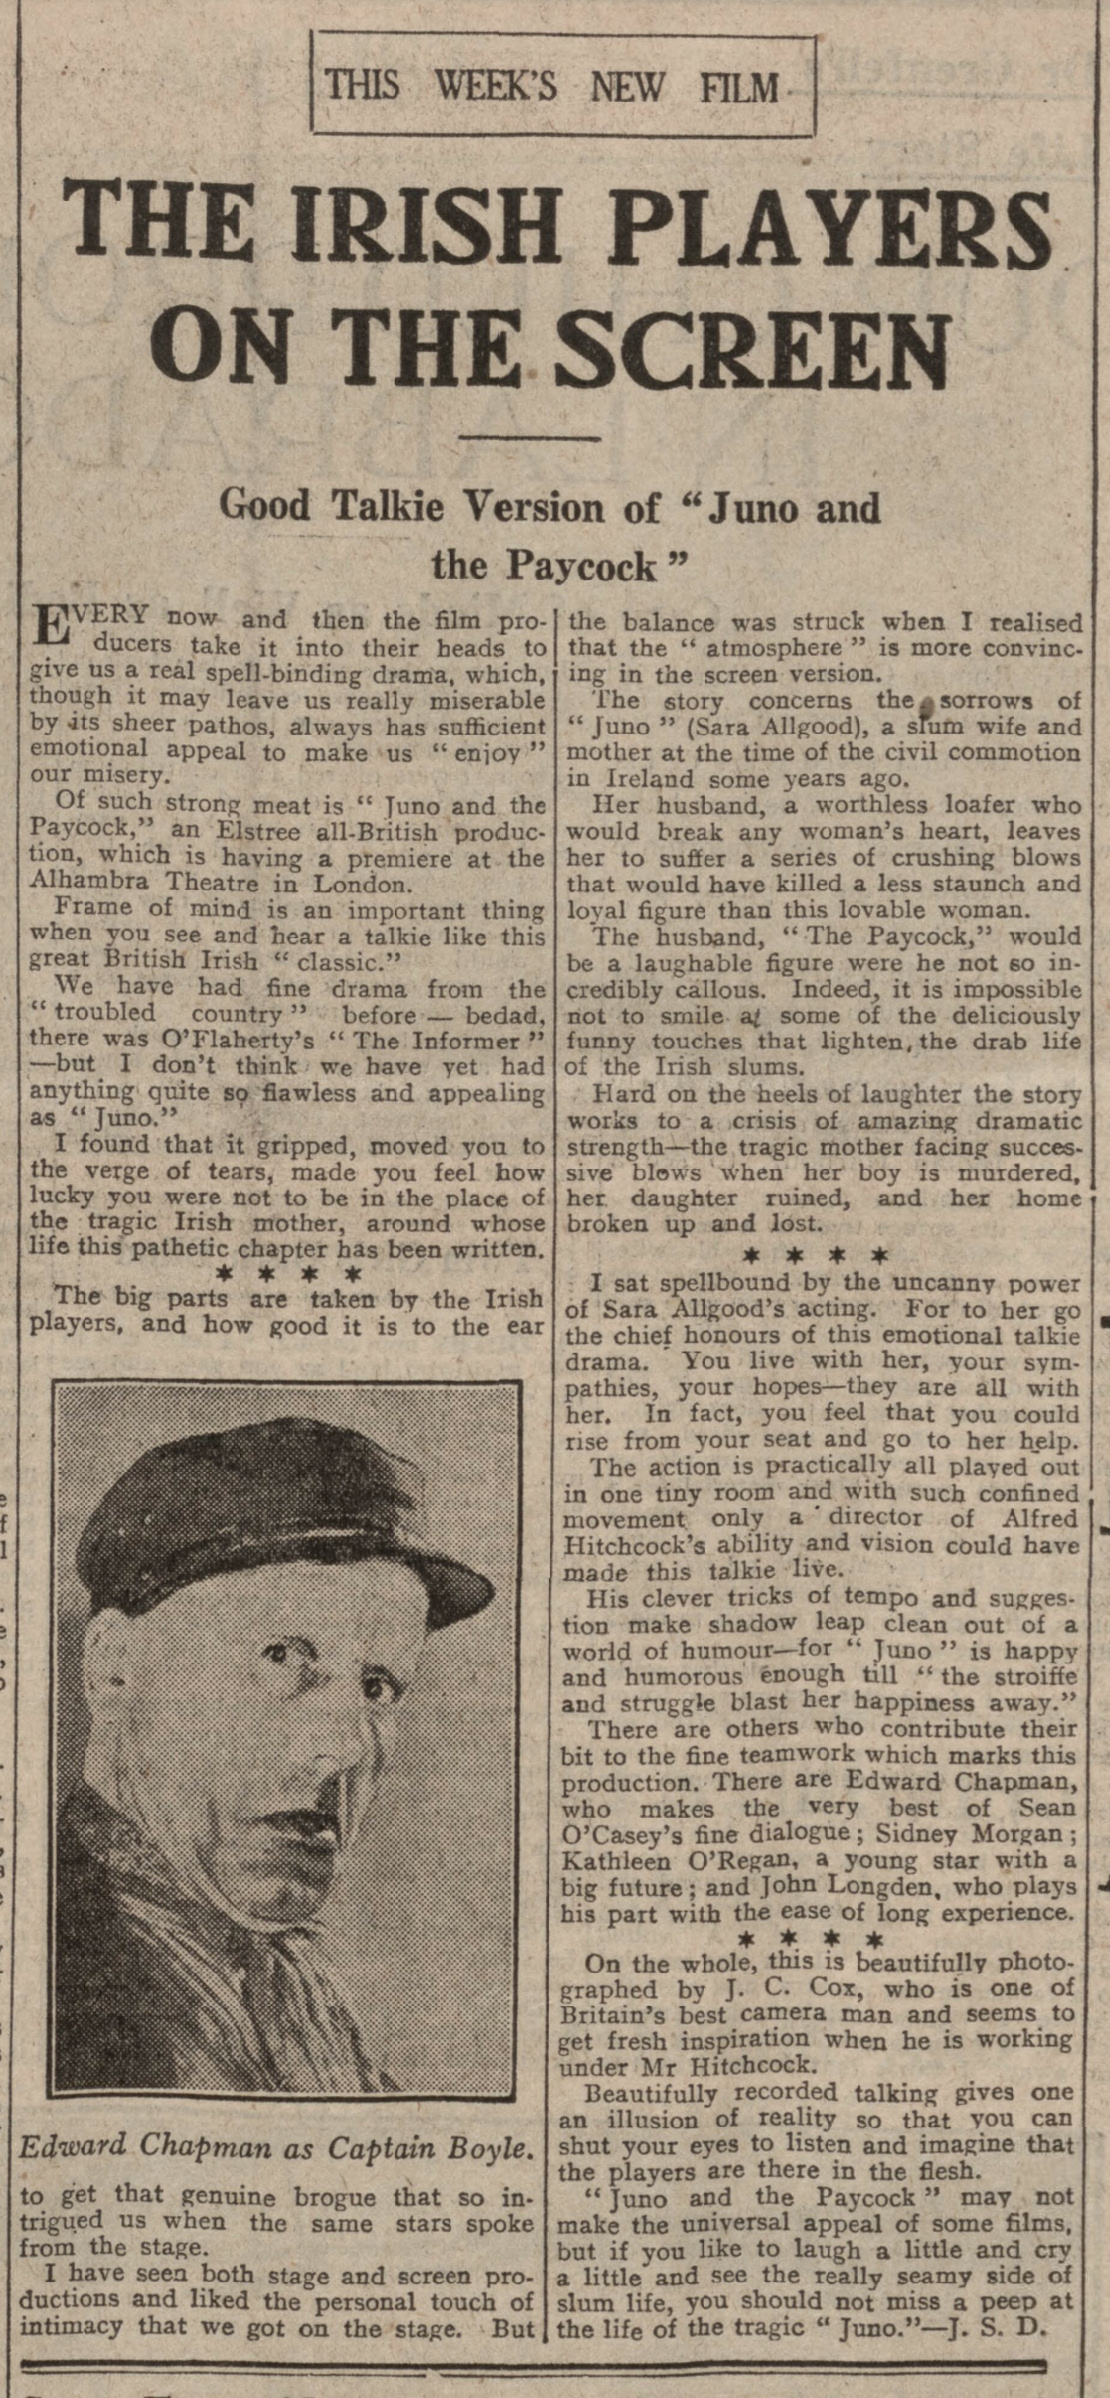 Juno and the Paycock (1930, dir. Alfred Hitchcock) Dundee Evening Telegraph review, 7 March 1930